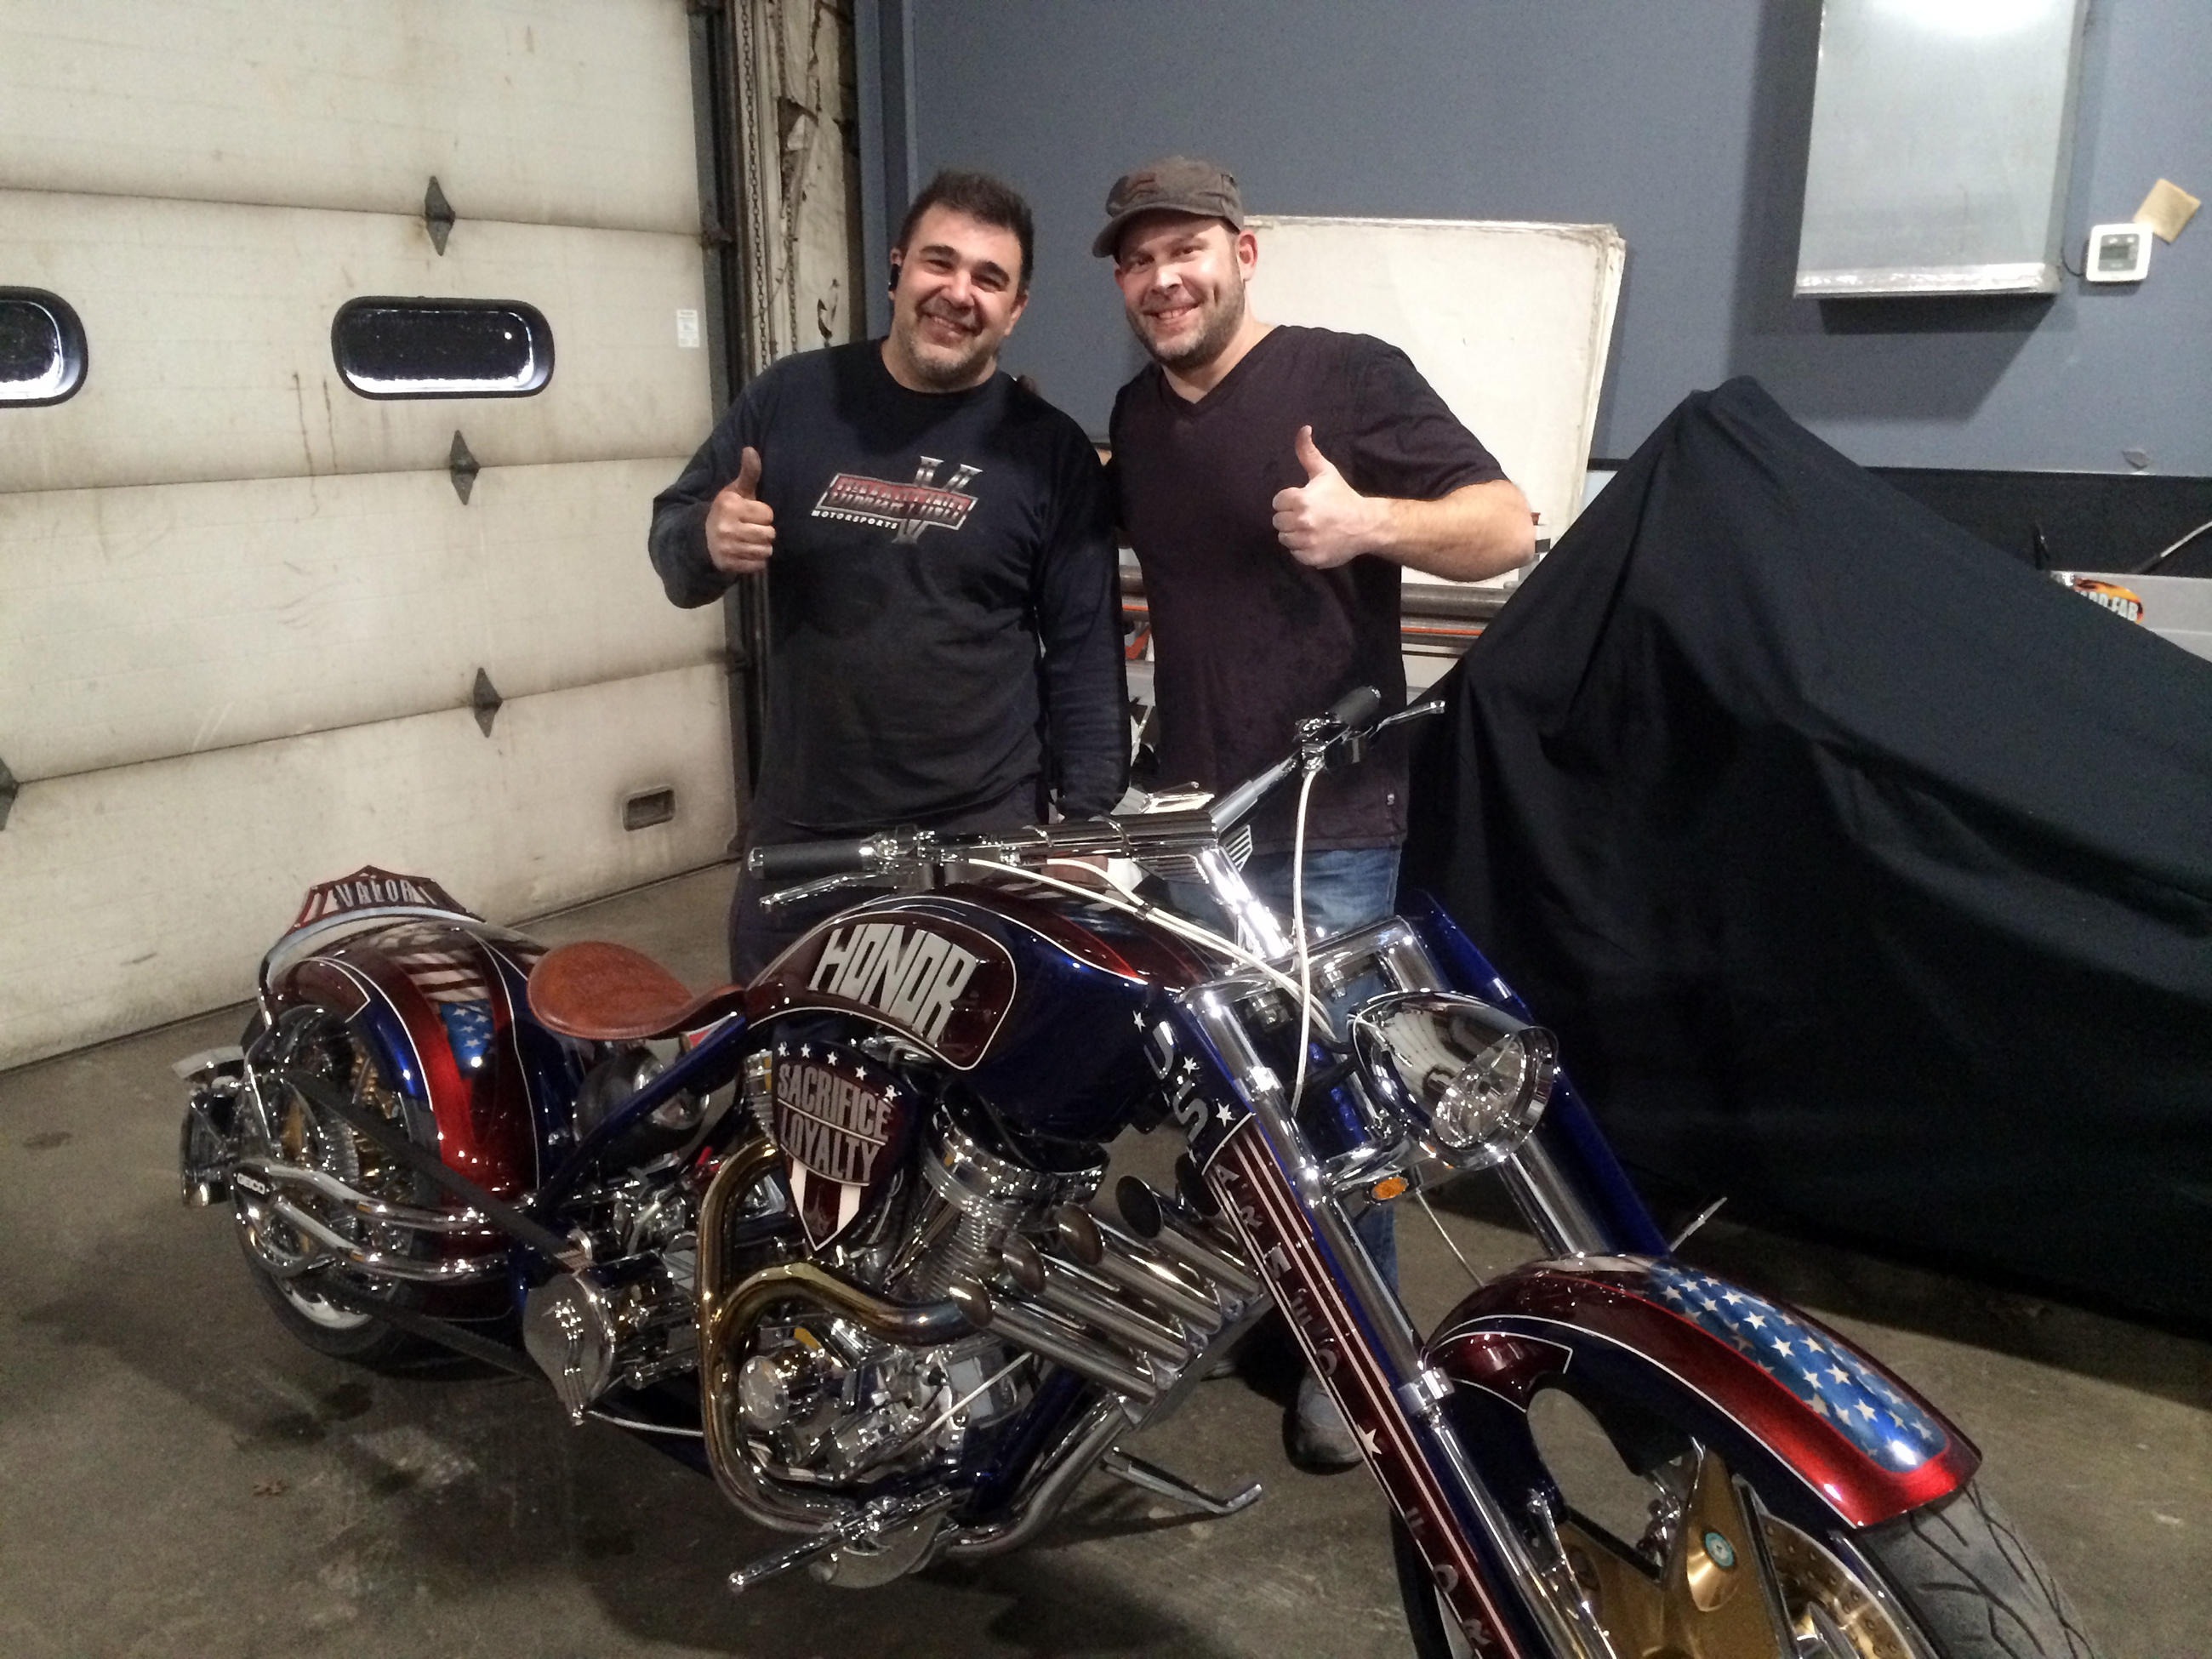 "Vincent ""Vinnie"" DiMartino has only had career highs. From learning his trade quickly as a kid to working on awesome custom motorbikes in a TV Show to now owning his own custom business."